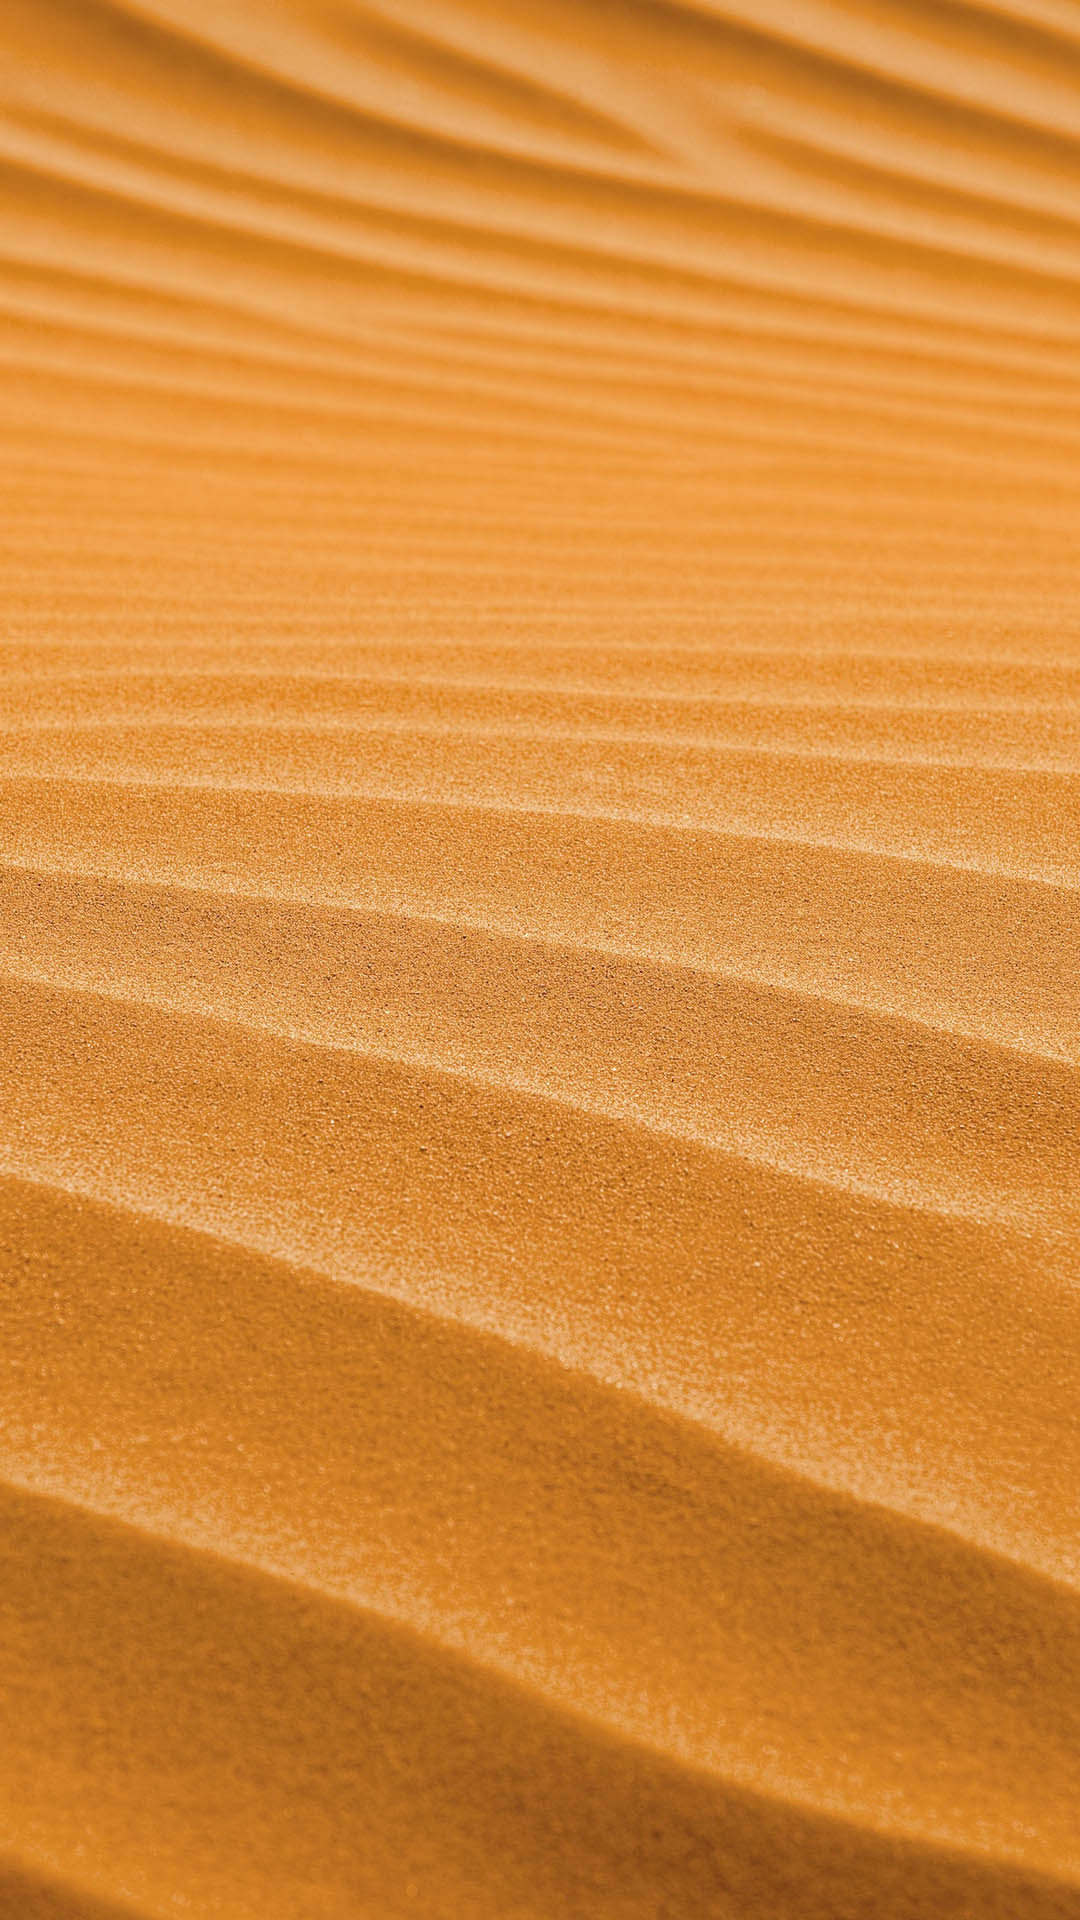 4k Fall Wallpaper For Phone Sahara Sand Dunes Best Htc One Wallpapers Free And Easy